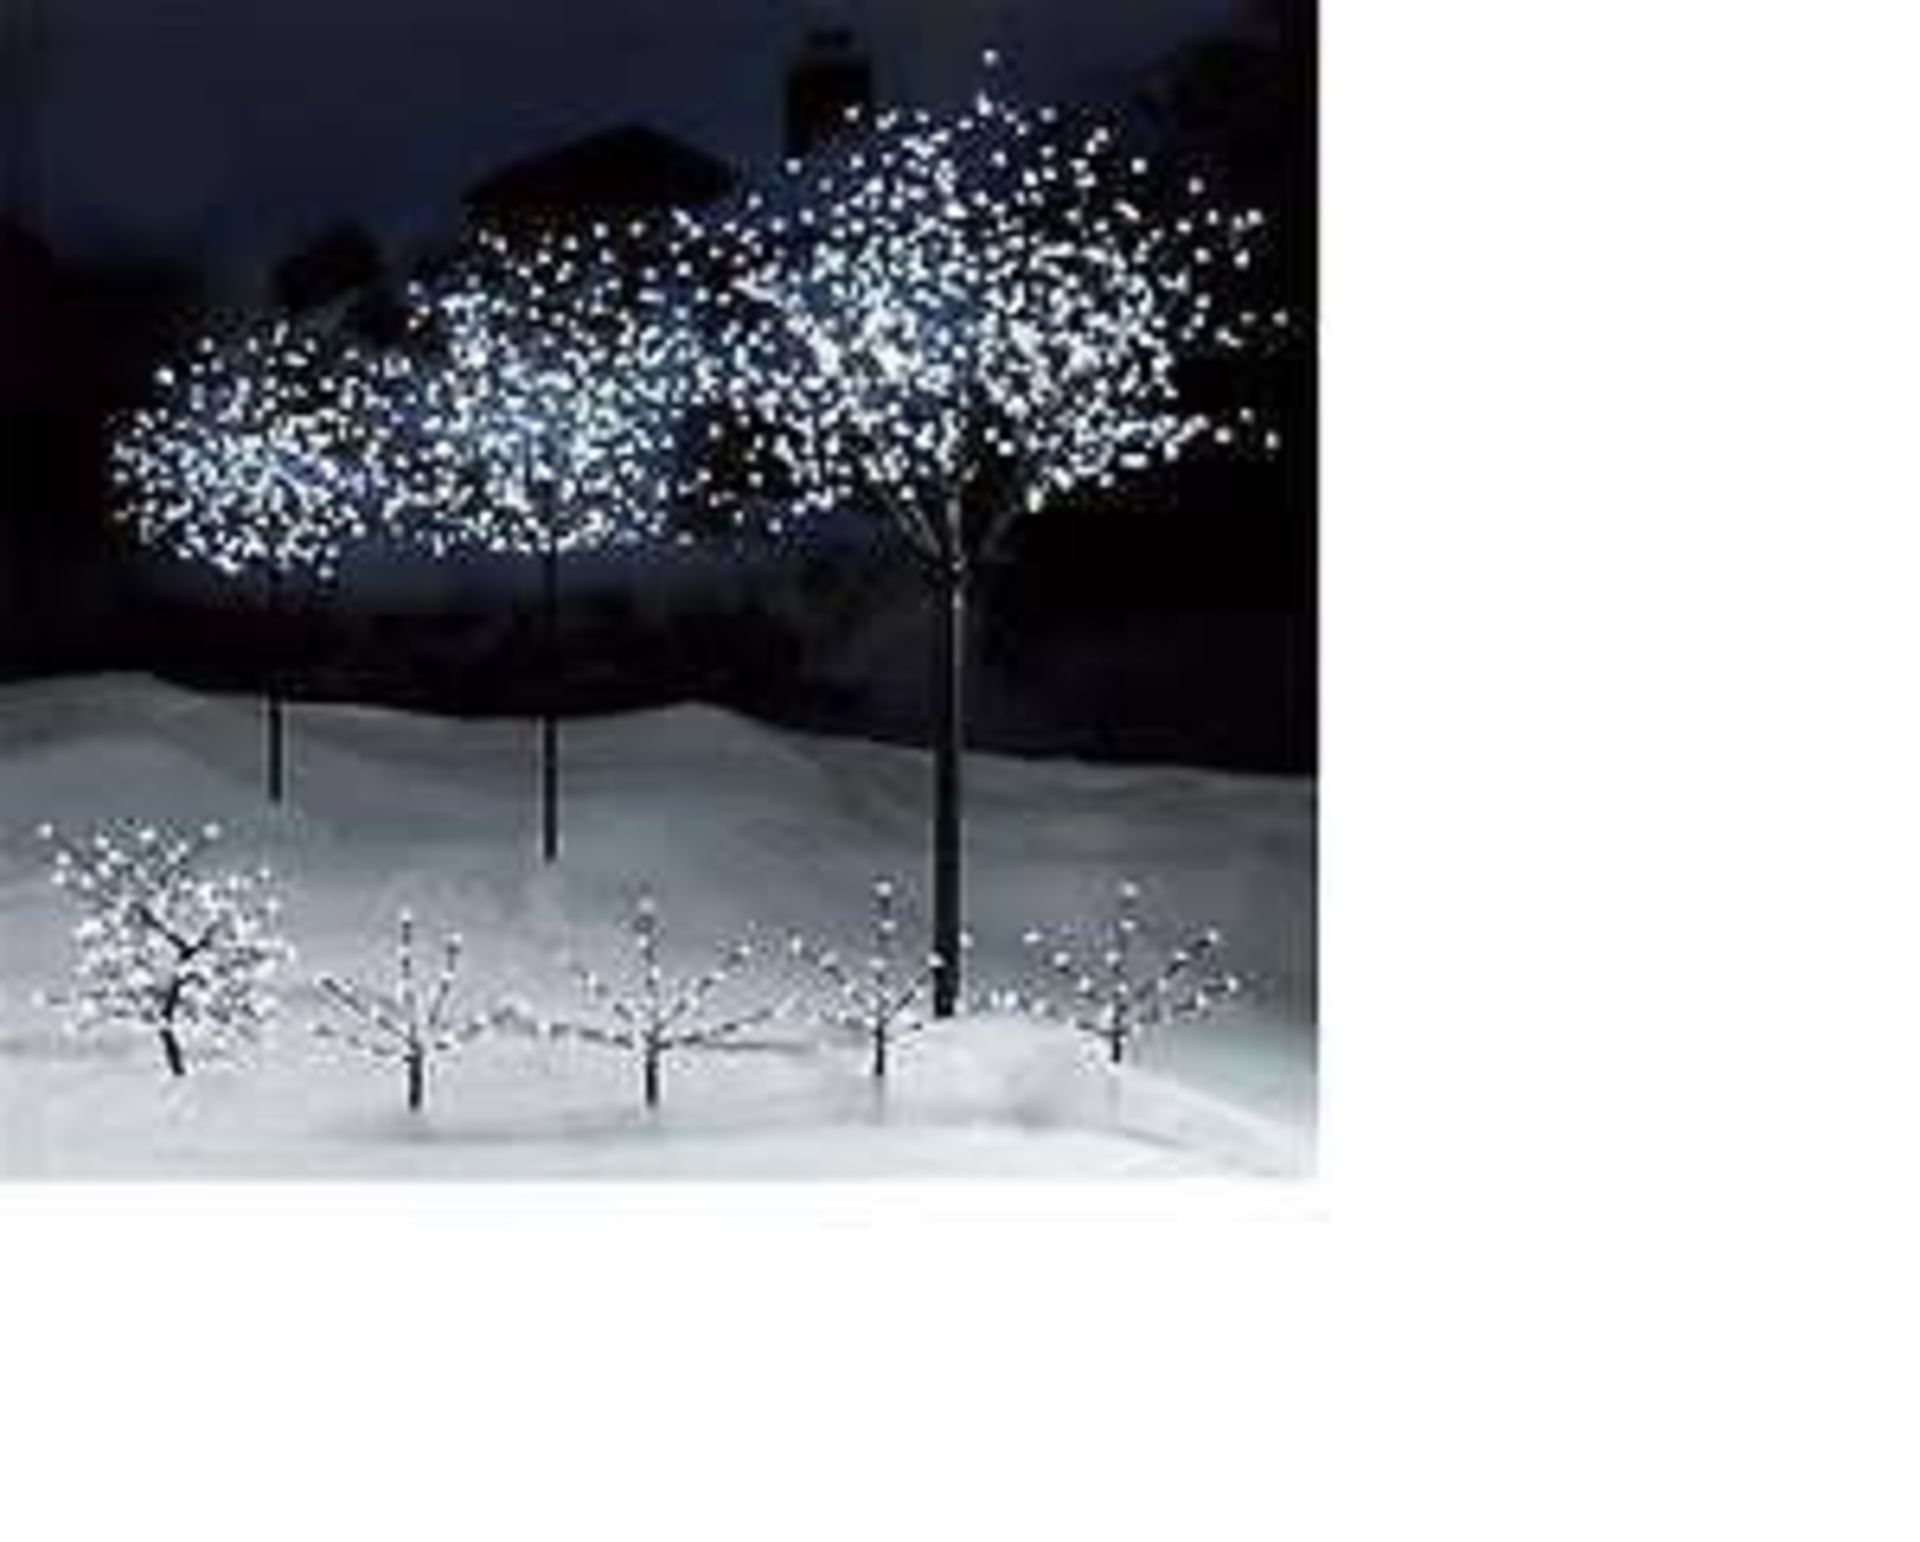 Lot 11961 - V Brand New 150cm Snow White LED Blossom Tree For Indoor And Outdoor Use RRP £54.99